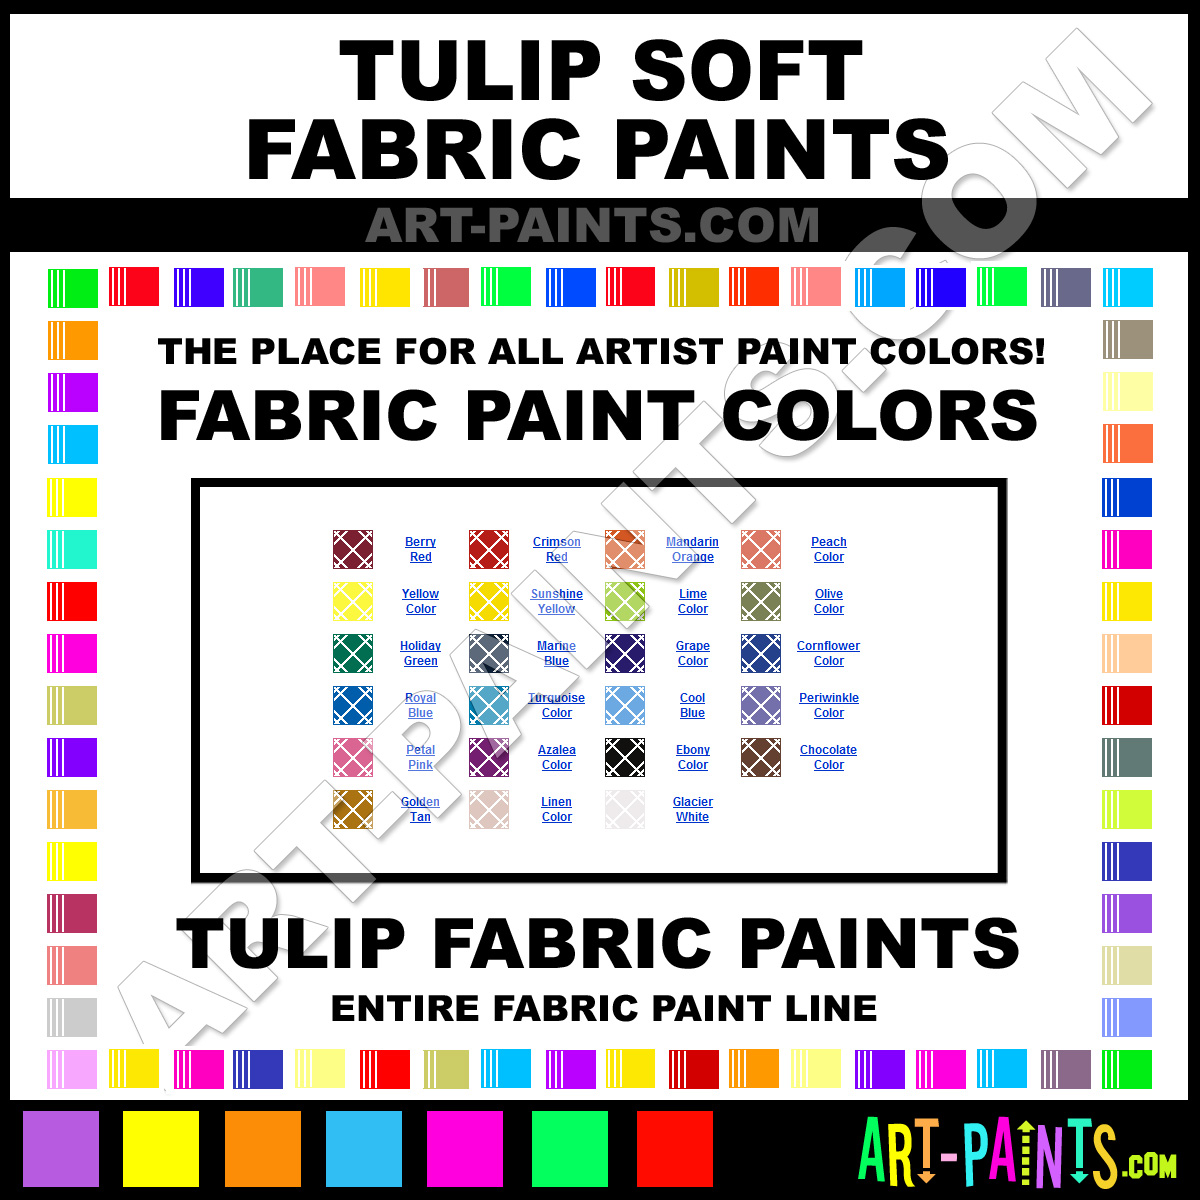 Tulip Fabric Textile Paint Brands Tulip Paint Brands Fabric Textile Paint Cool Color Neon